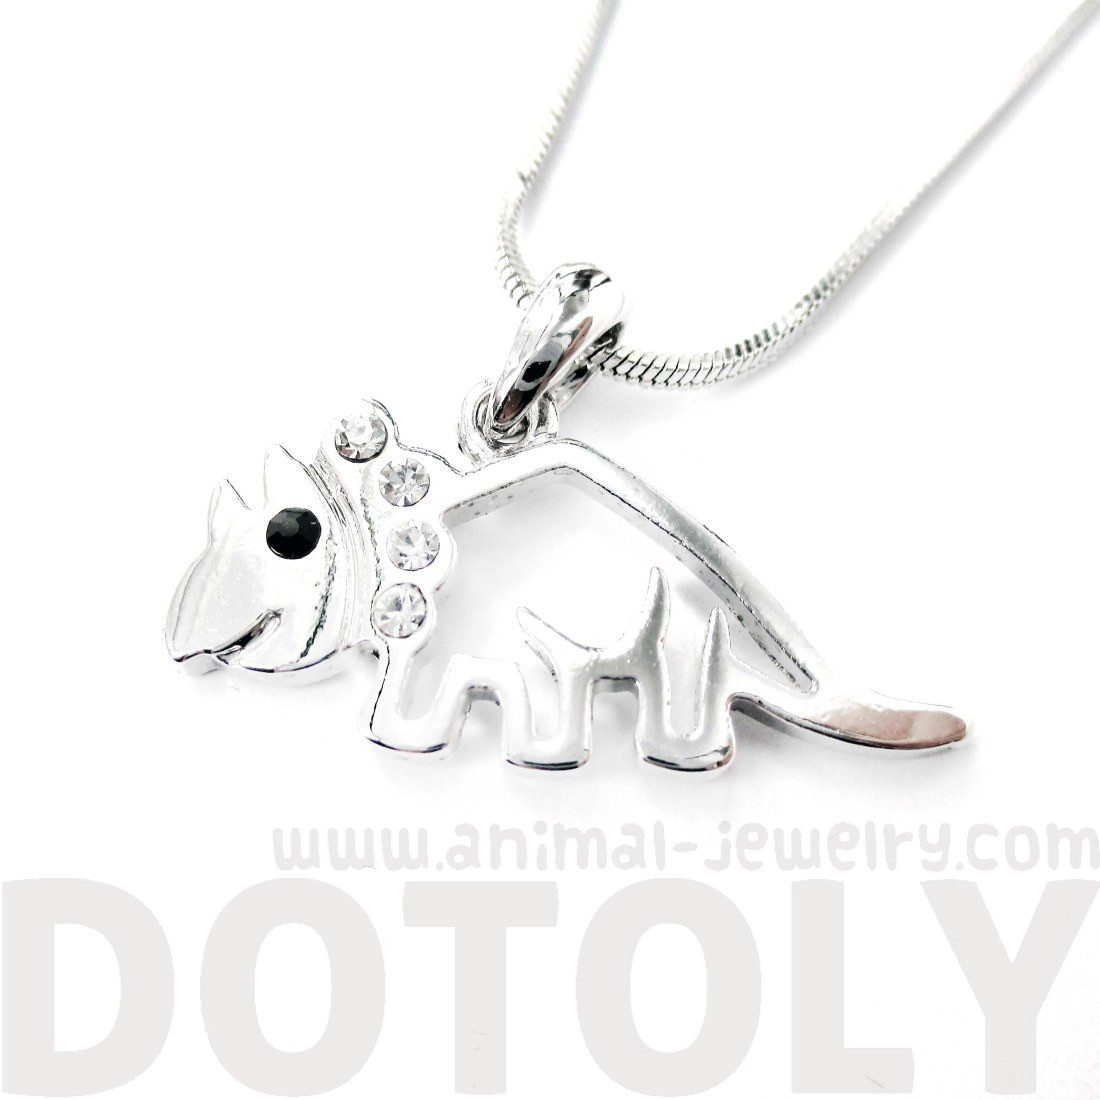 Triceratop Dinosaur Outline Prehistoric Animal Themed Pendant Necklace